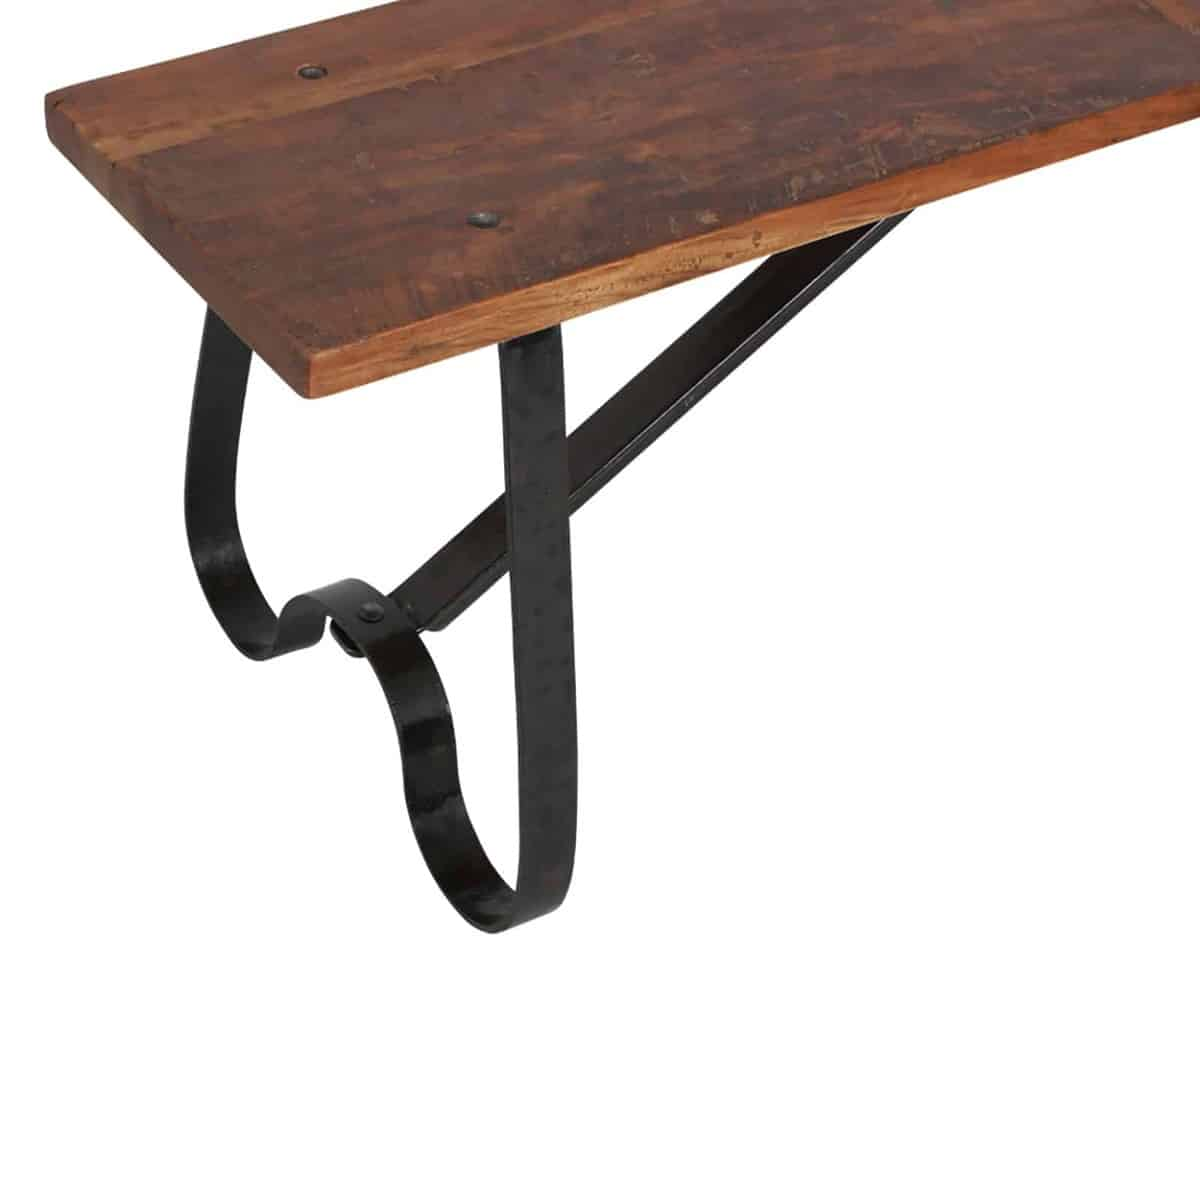 curved leg of wooden facory bench